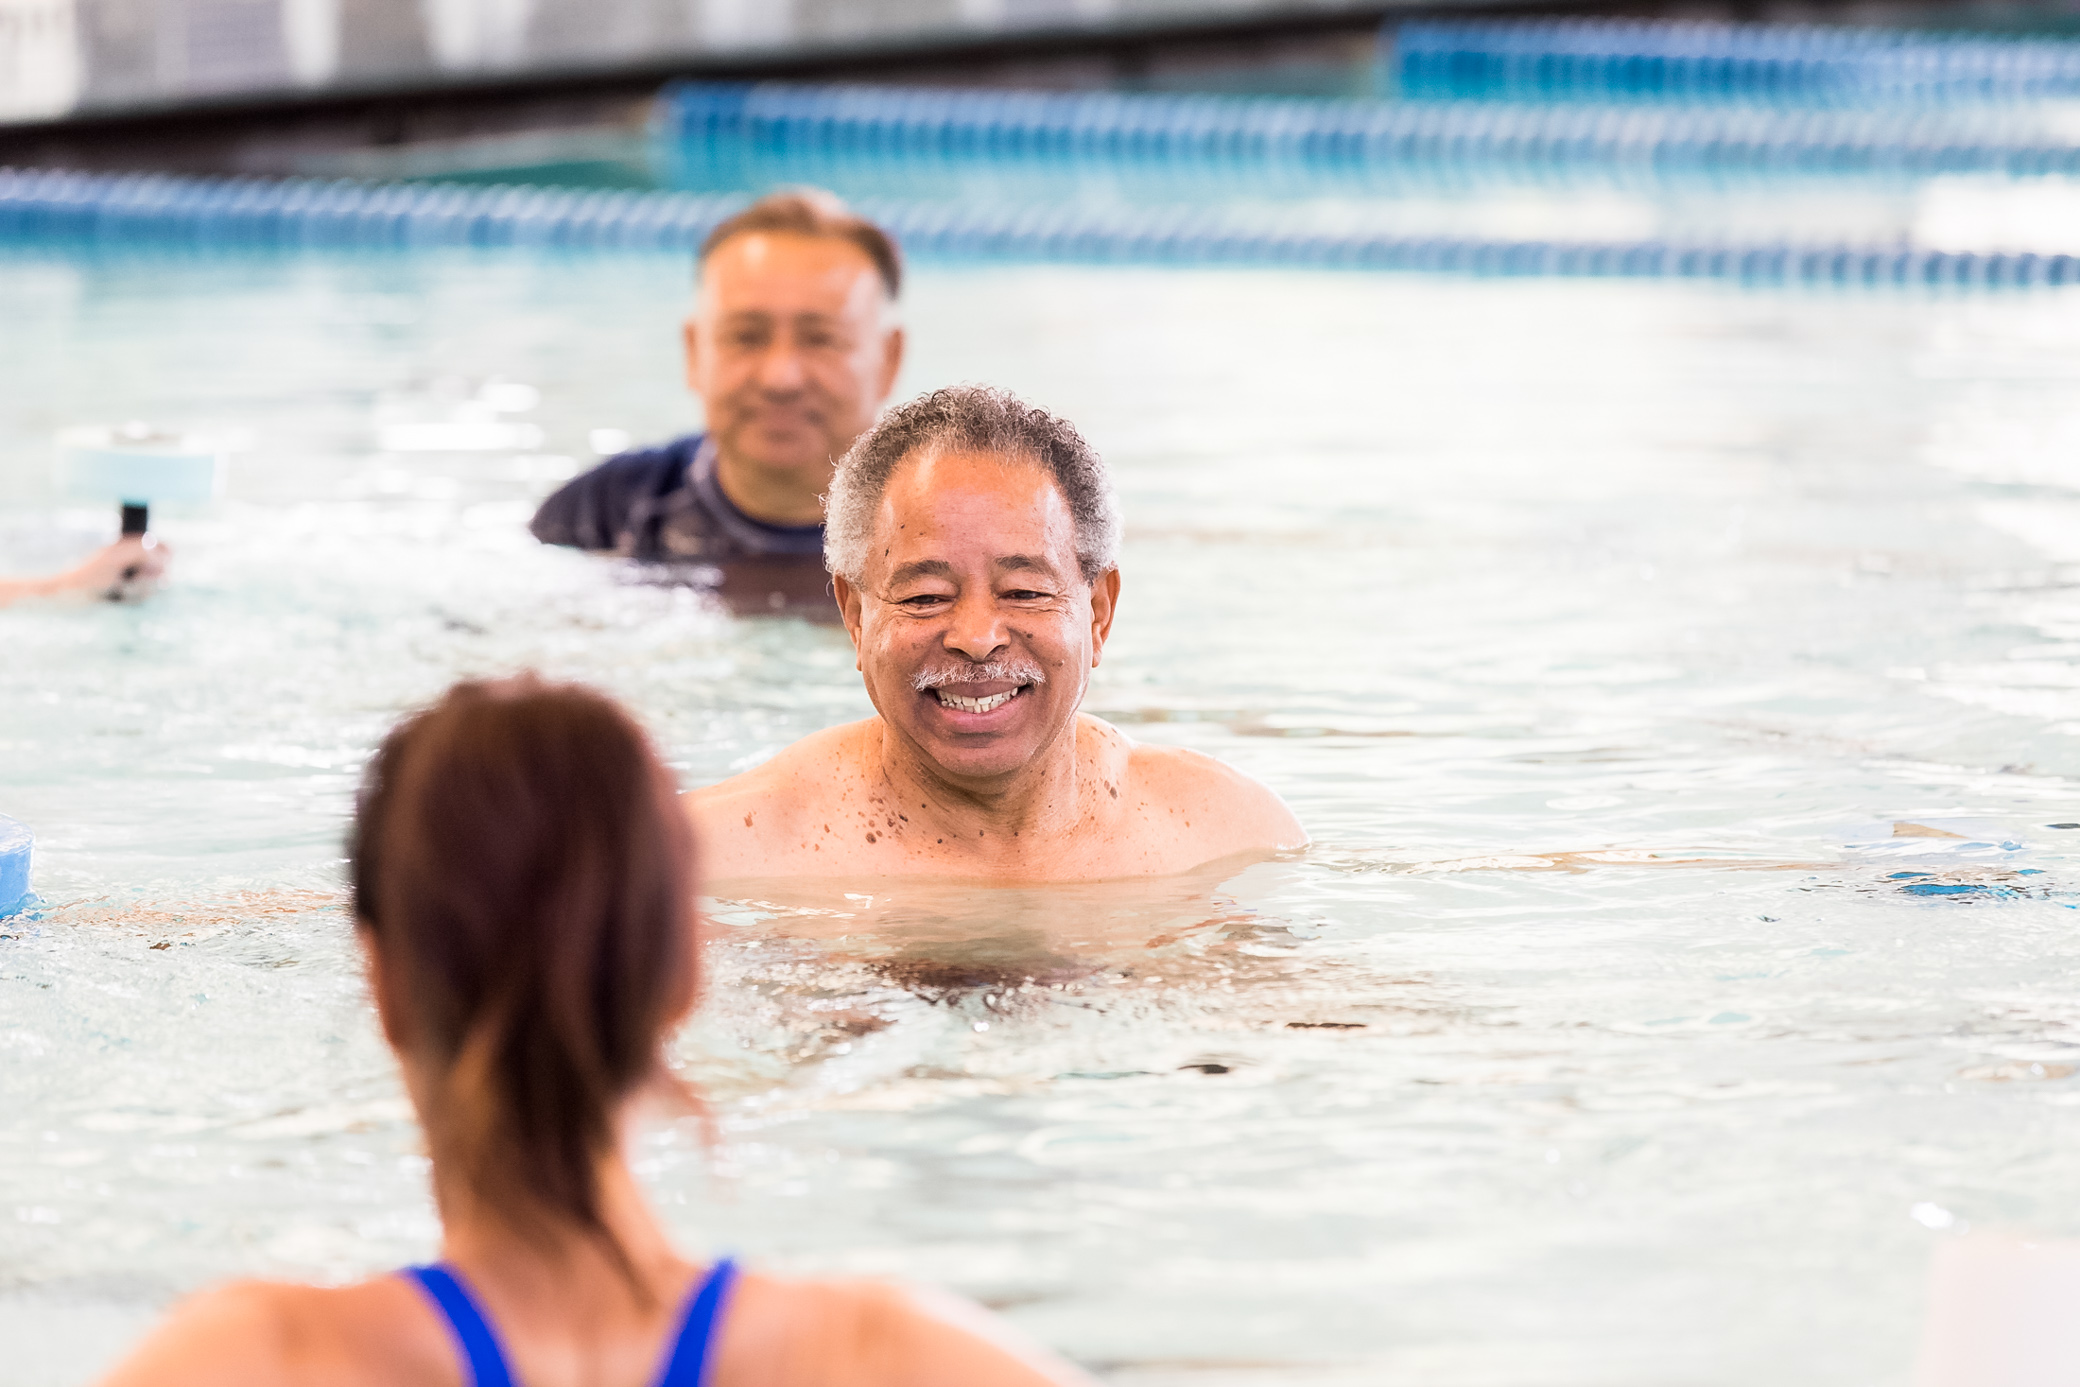 EL_2_POOL_2_AquafitDUAL_085.jpg